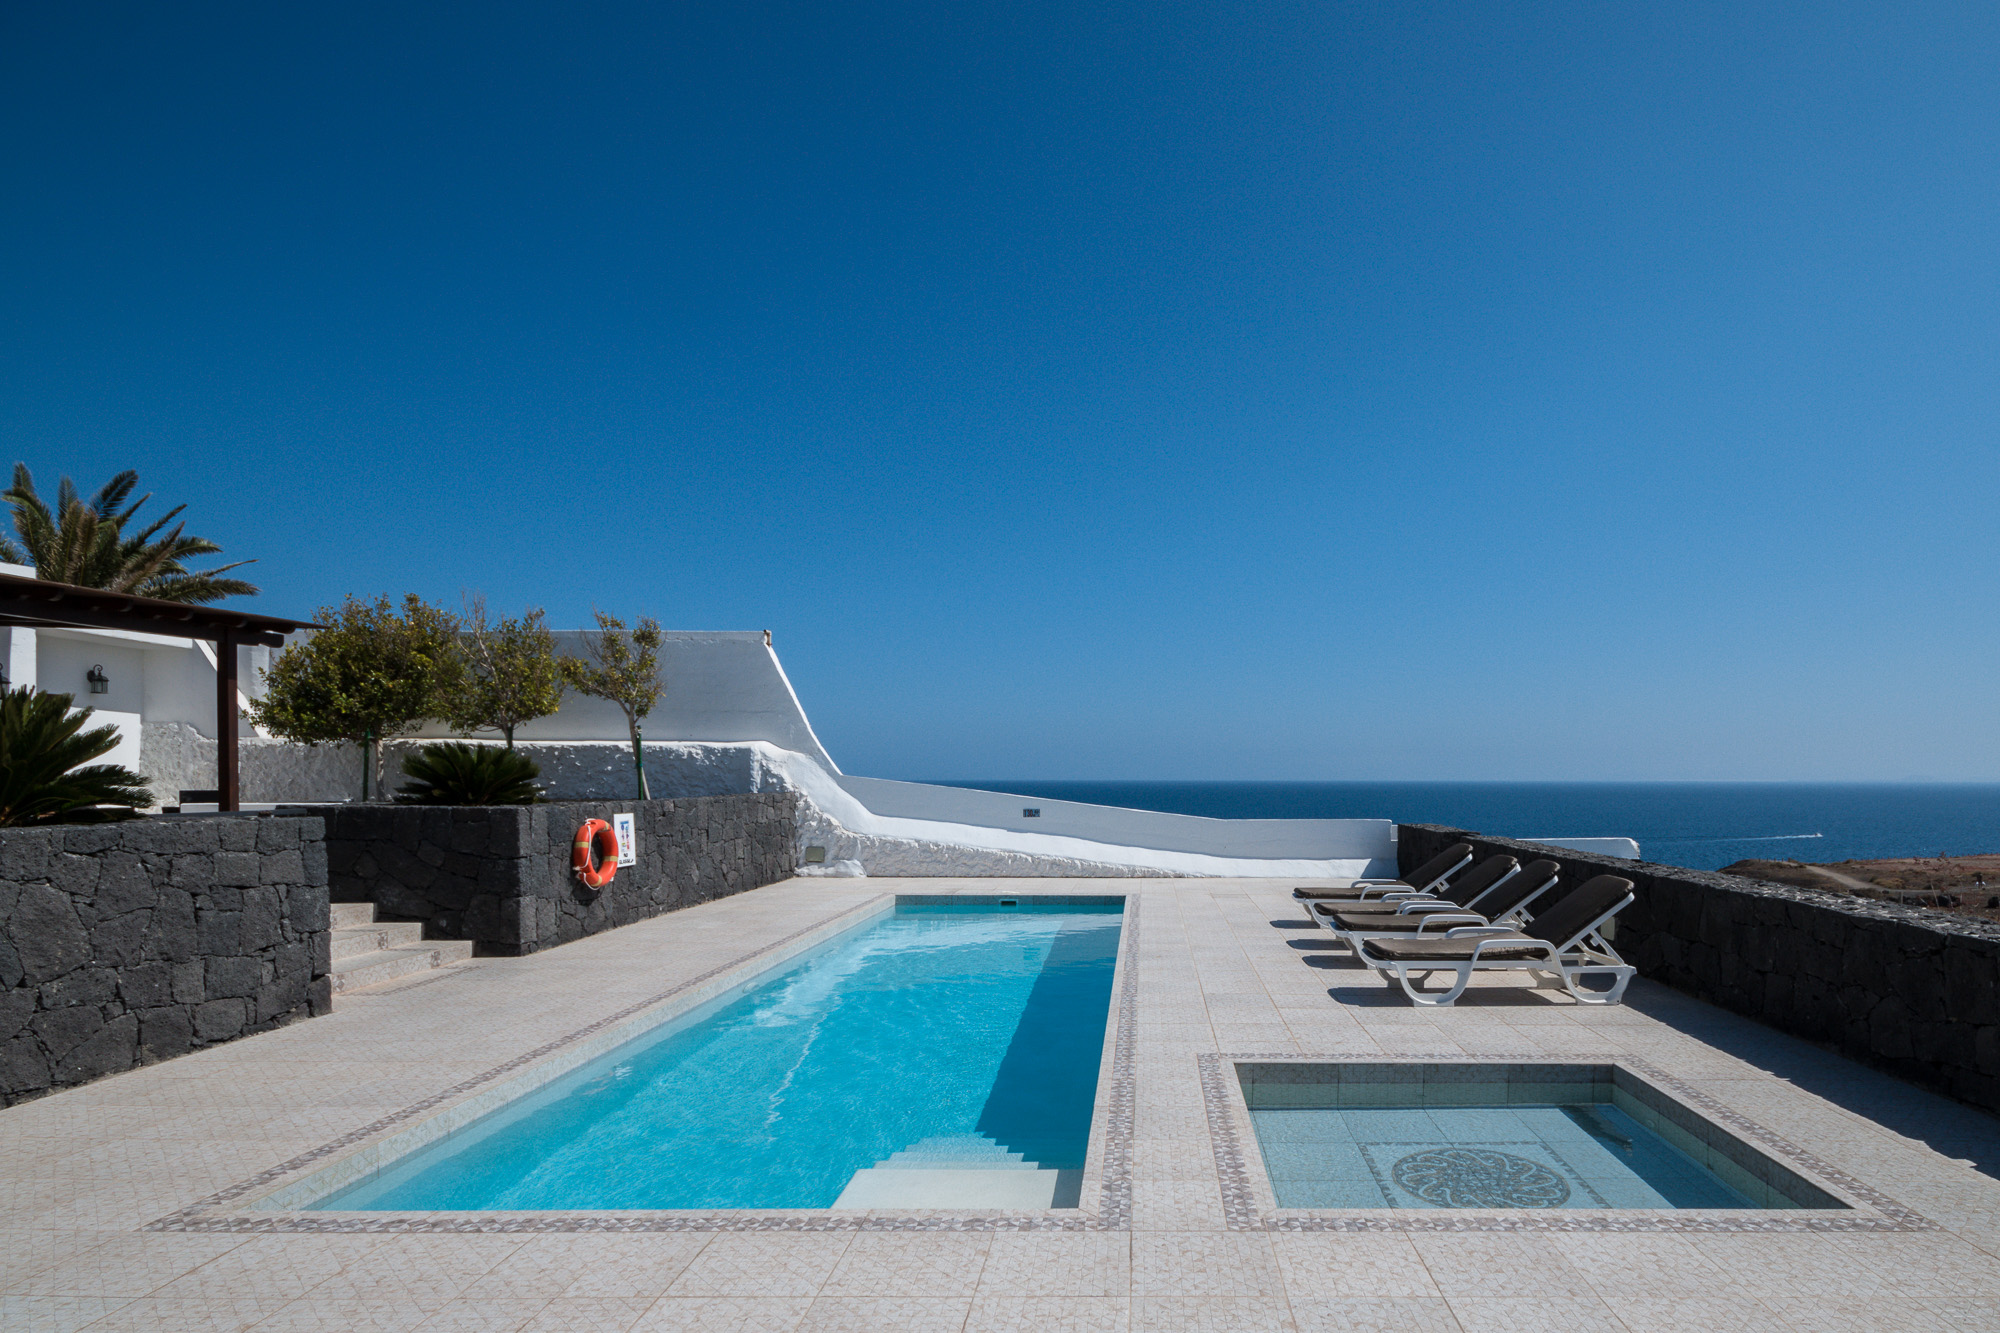 Lanzarote swimming pool builders by natura design for Best pool design 2015